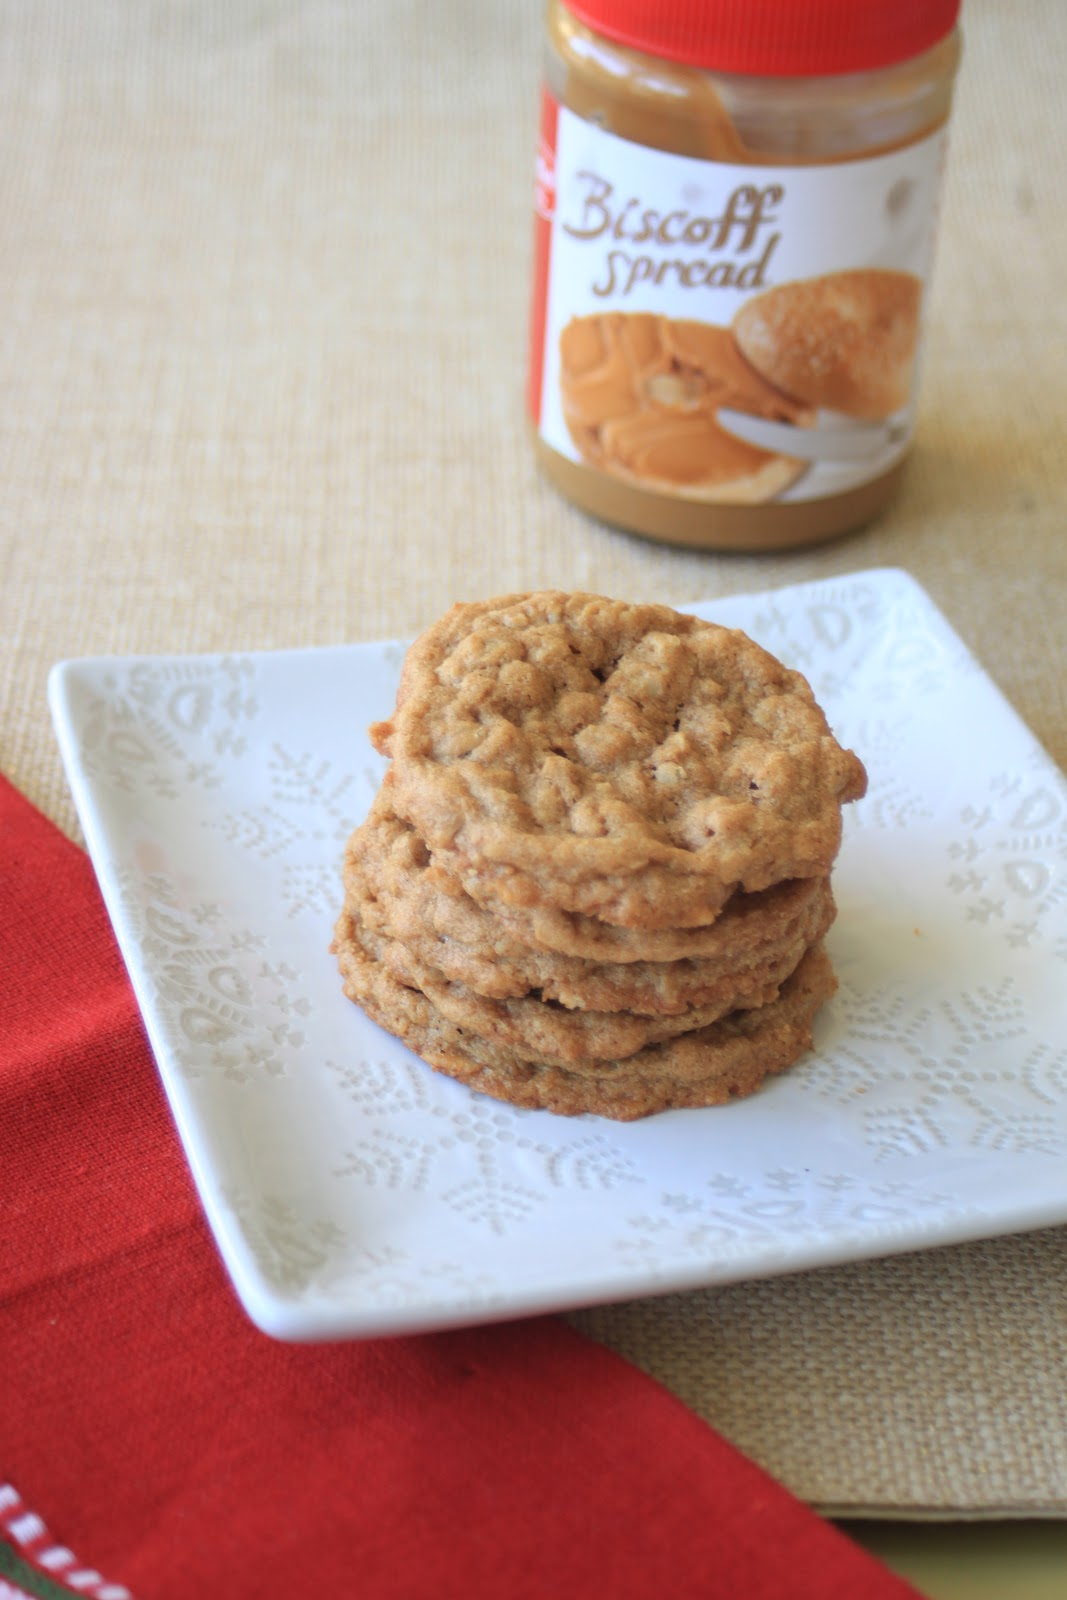 Good Clean Fun: Biscoff Oatmeal Cookies